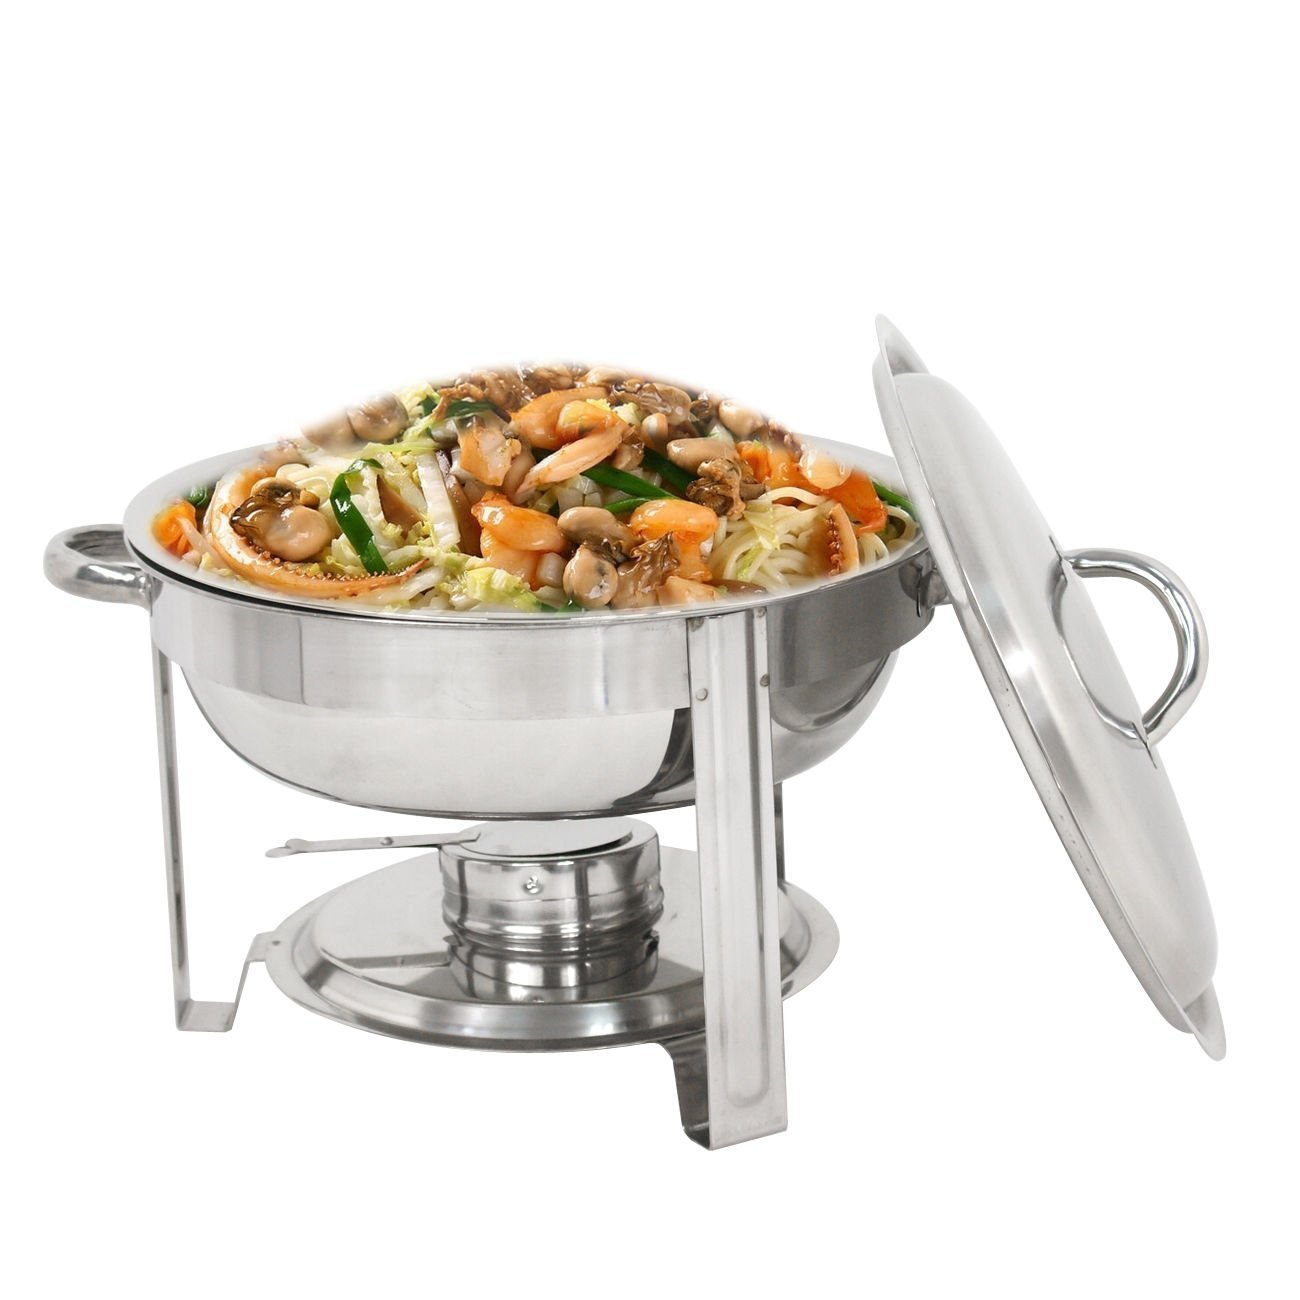 Super Deal Stainless Steel Combo - 2 Round Chafing Dish + 2 Rectangular Chafers by SUPER DEAL (Image #4)